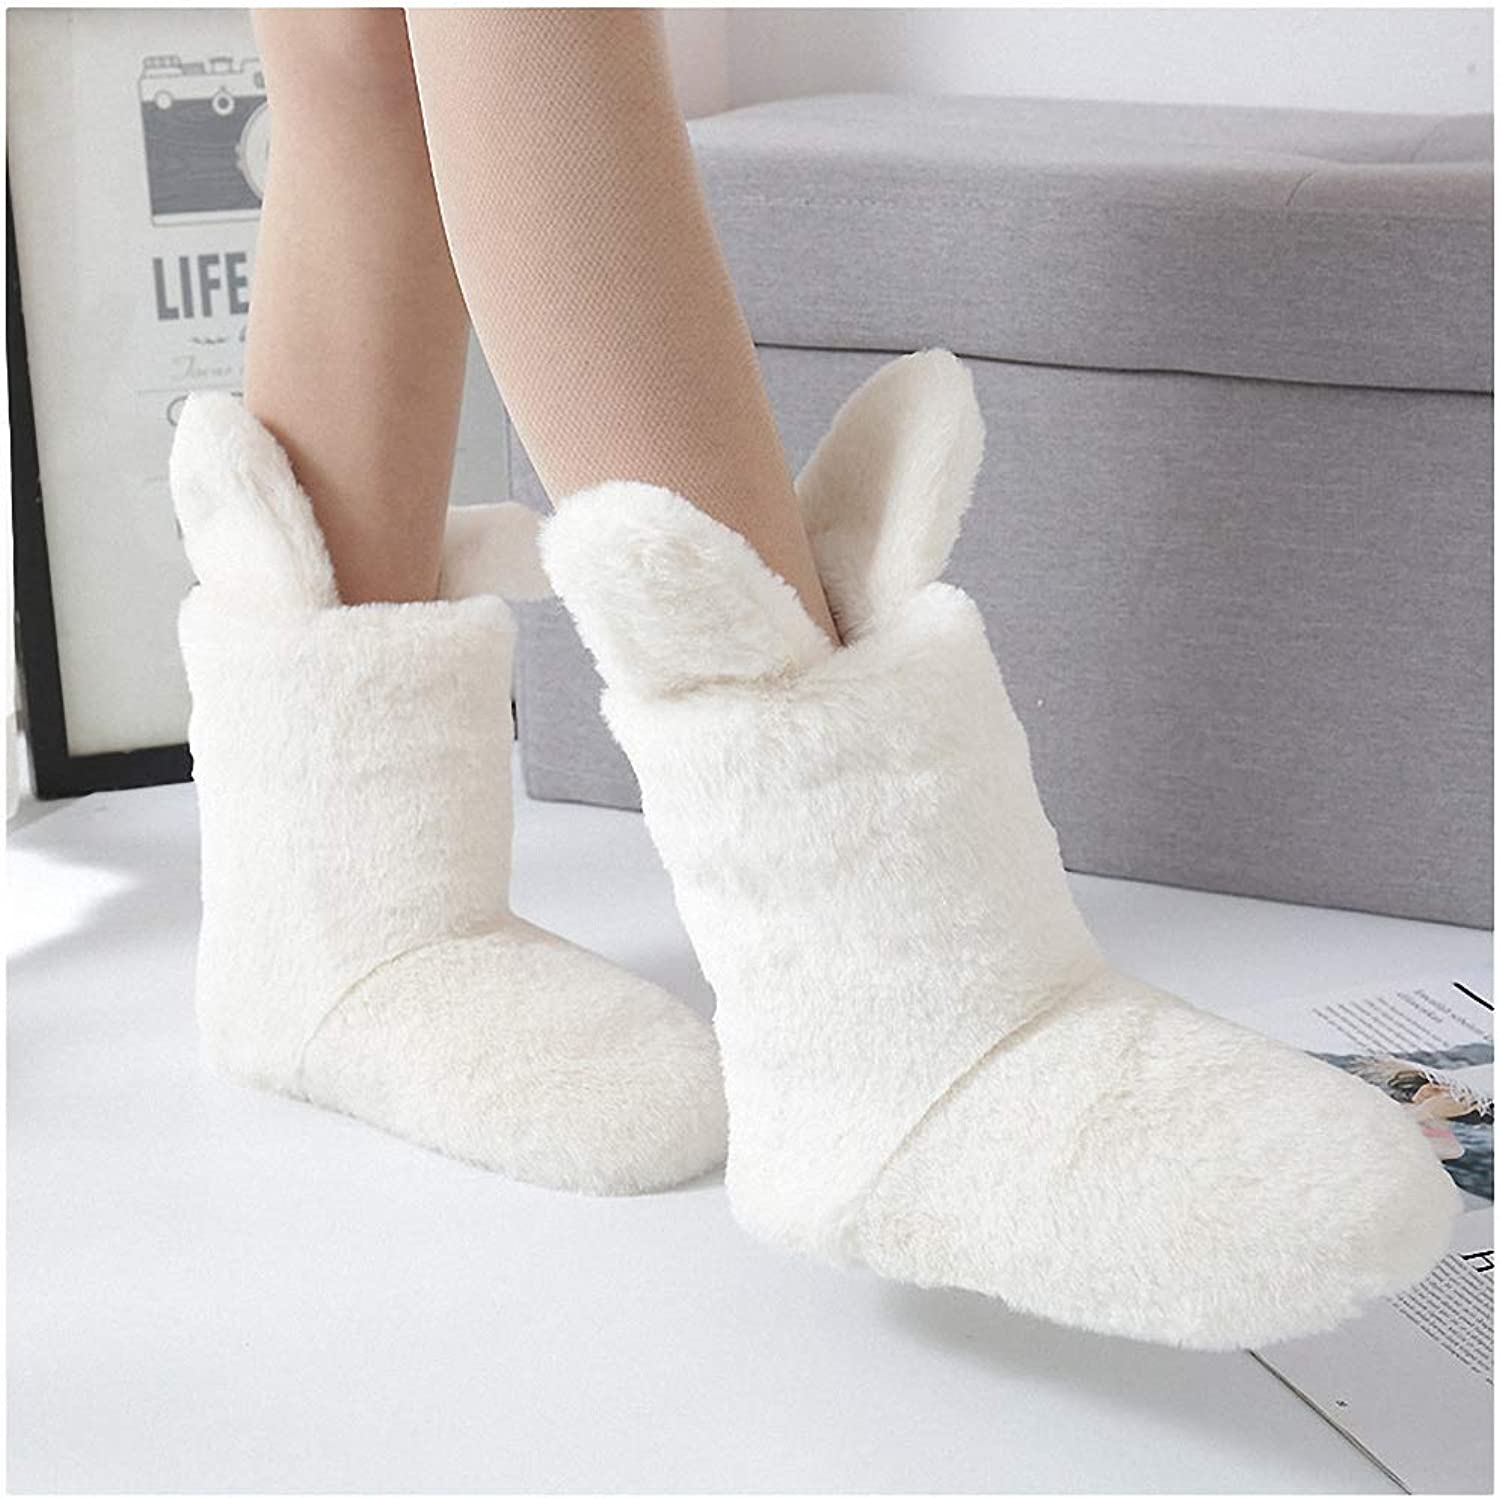 Womens Slippers Winter Women's Cute Rabbit Slippers Indoor shoes Comfort Warm Home Soft Fur Slippers